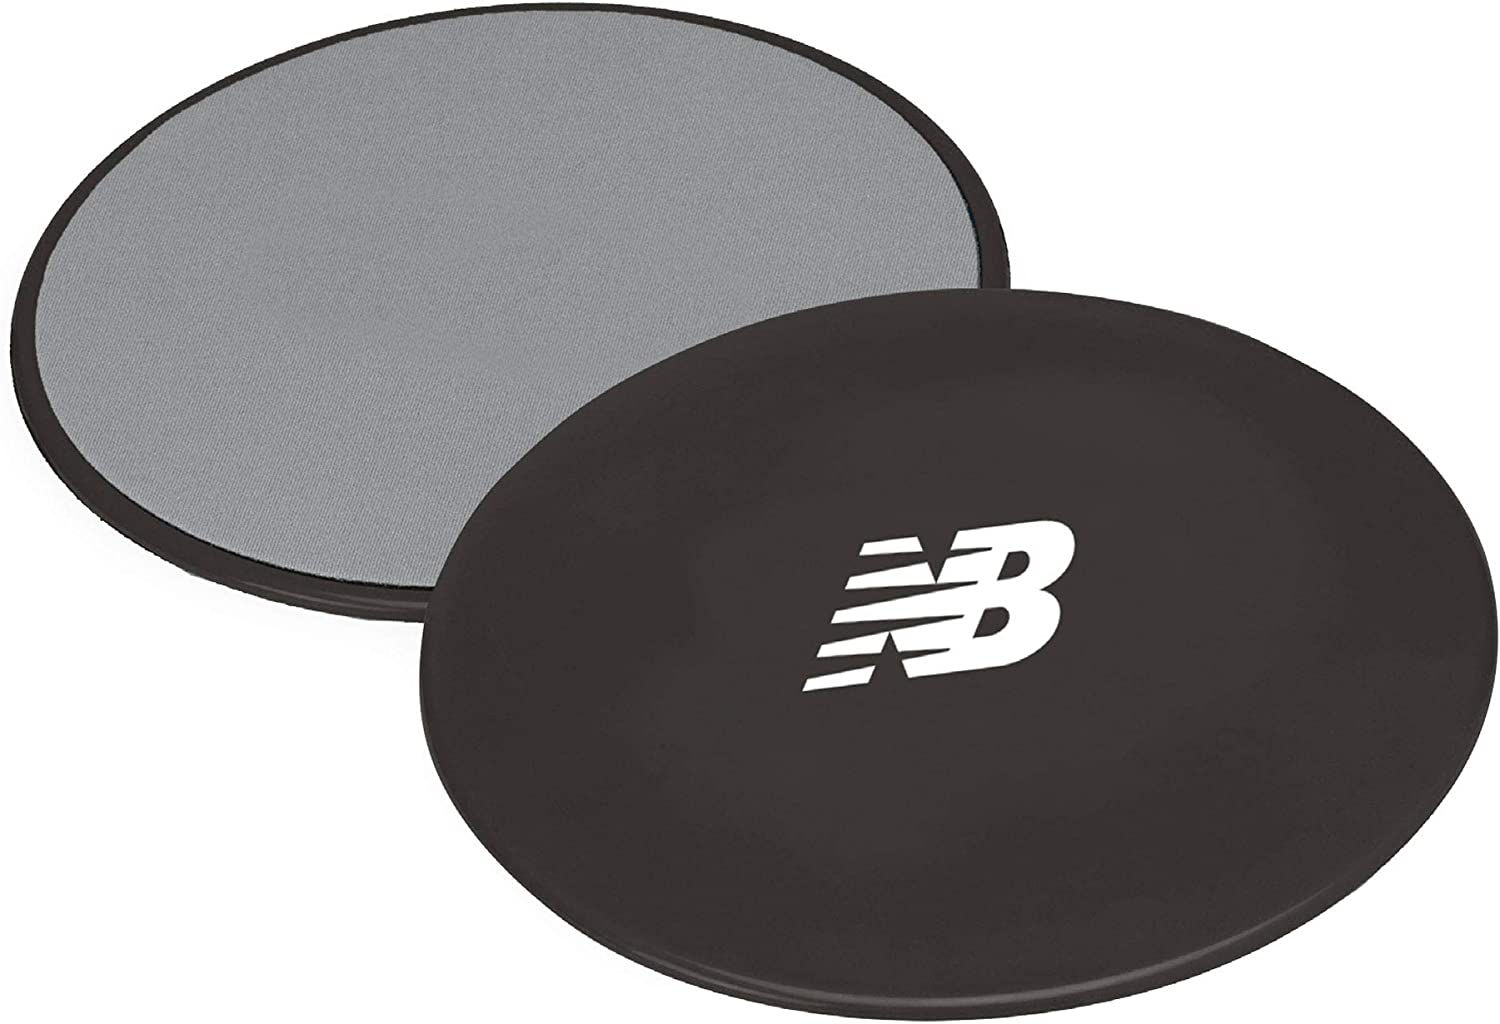 New Balance Core Sliders Workout Gliding Discs - Fitness Ab Sliders Dual-Sided Pads (Carpet/Hardwood Floor)   Home Ab Exercise Equipment for Women, ...